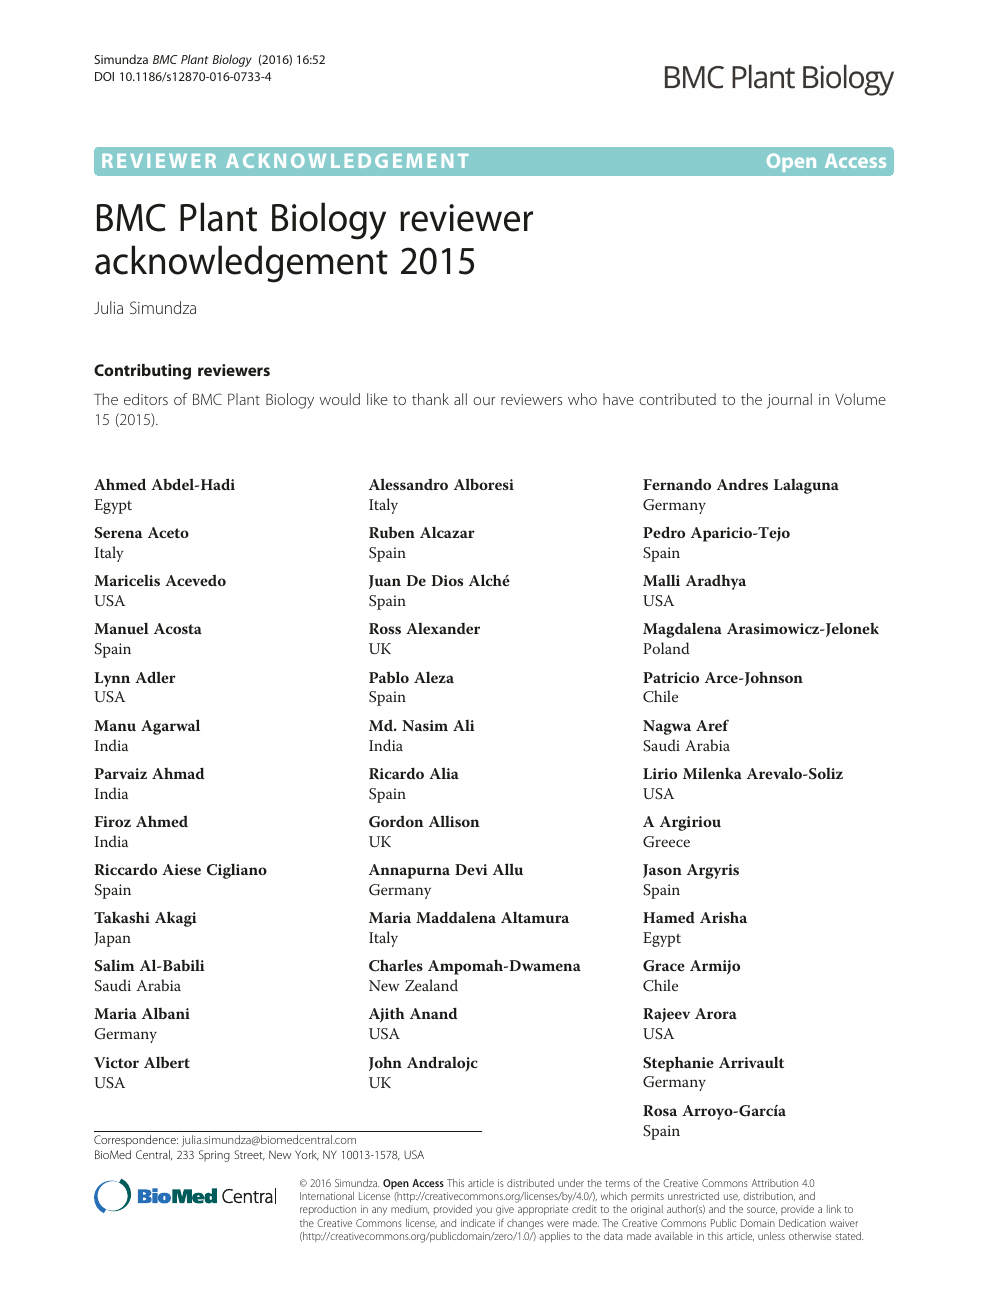 BMC Plant Biology reviewer acknowledgement 2015 – topic of